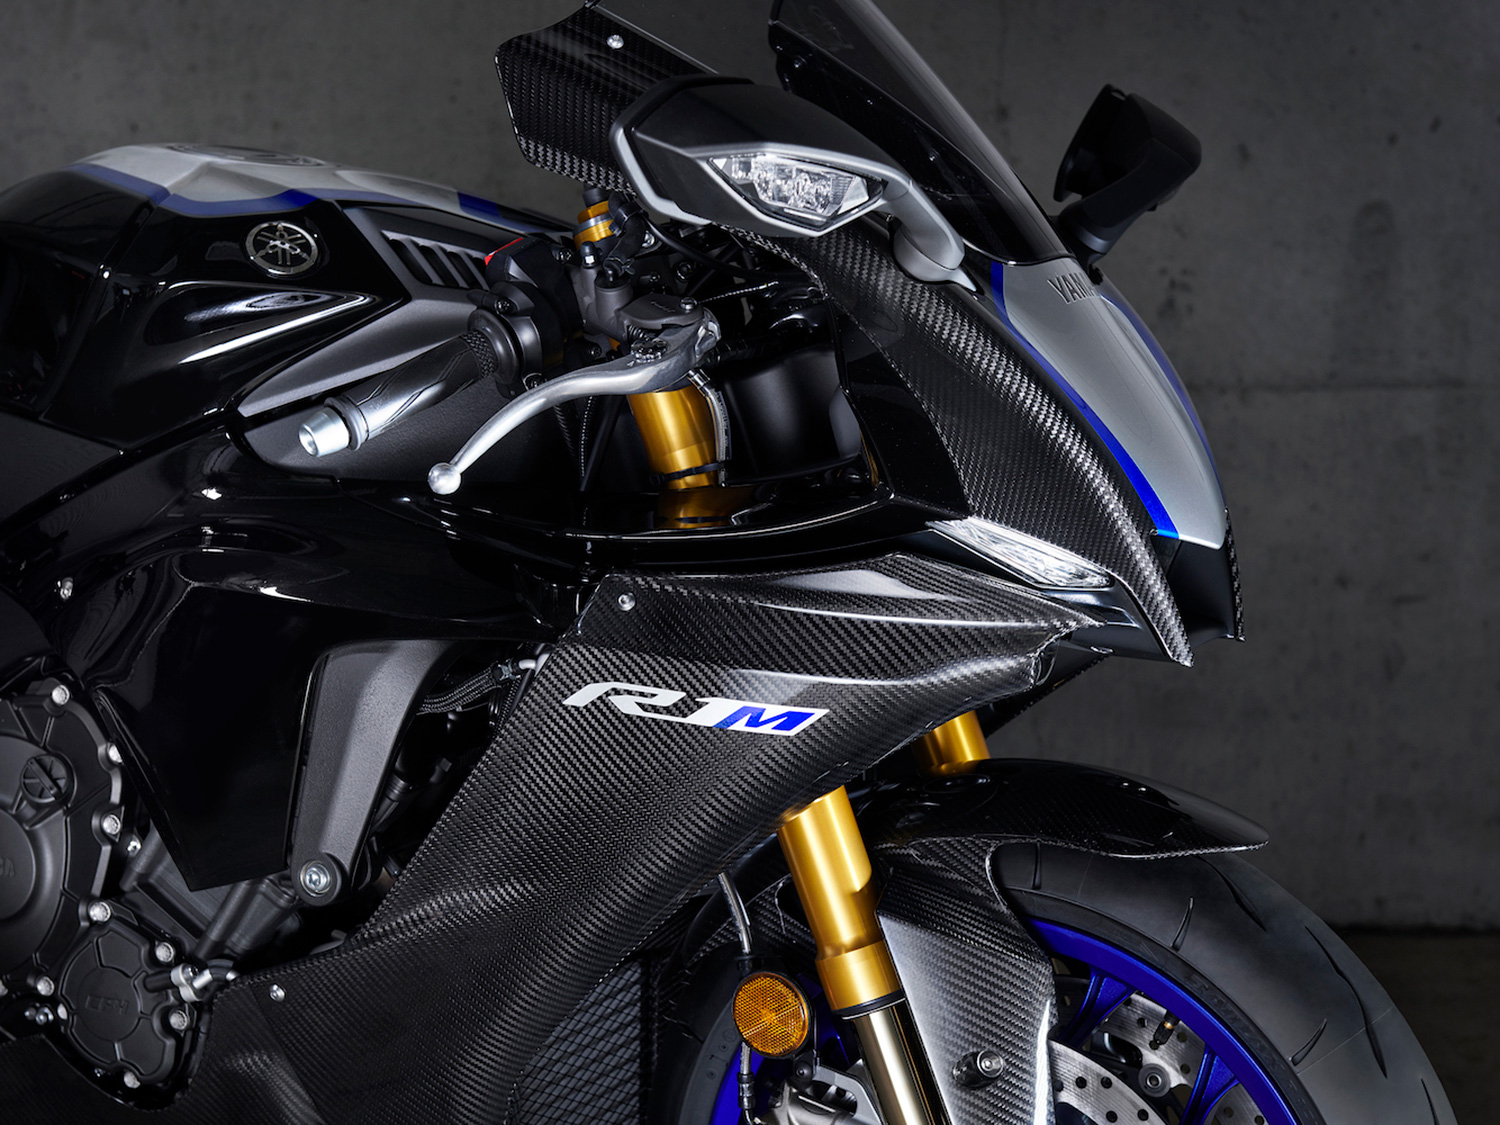 The YZF-R1M comes only a Carbon Fiber through Yamaha's online-reservation system